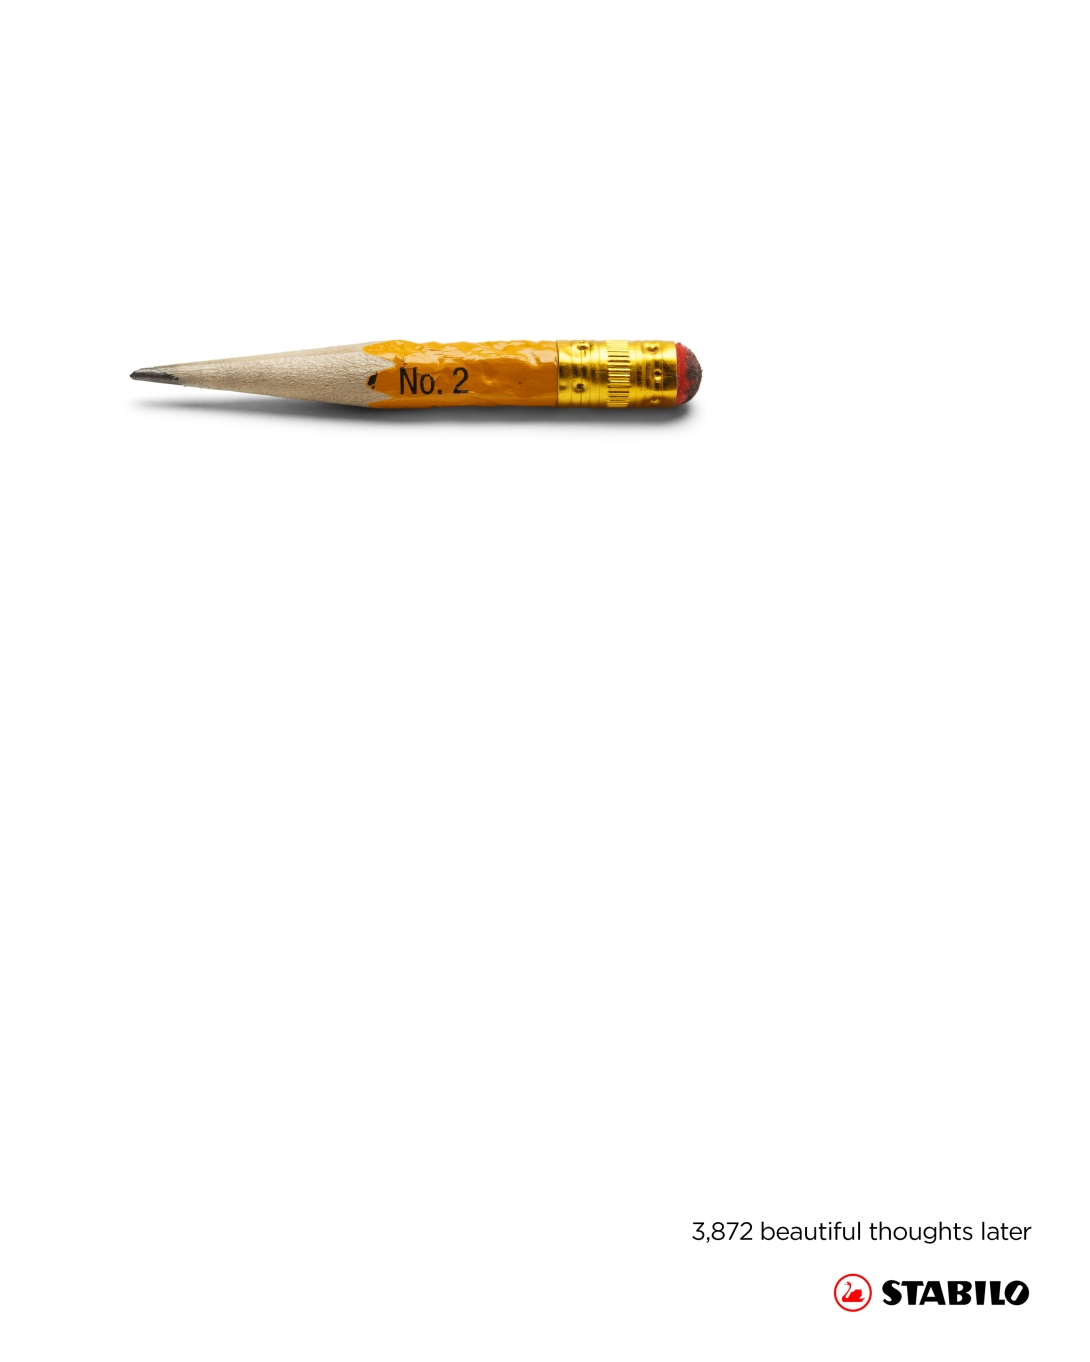 An advertising idea for a pencil brand - beautiful thoughts later